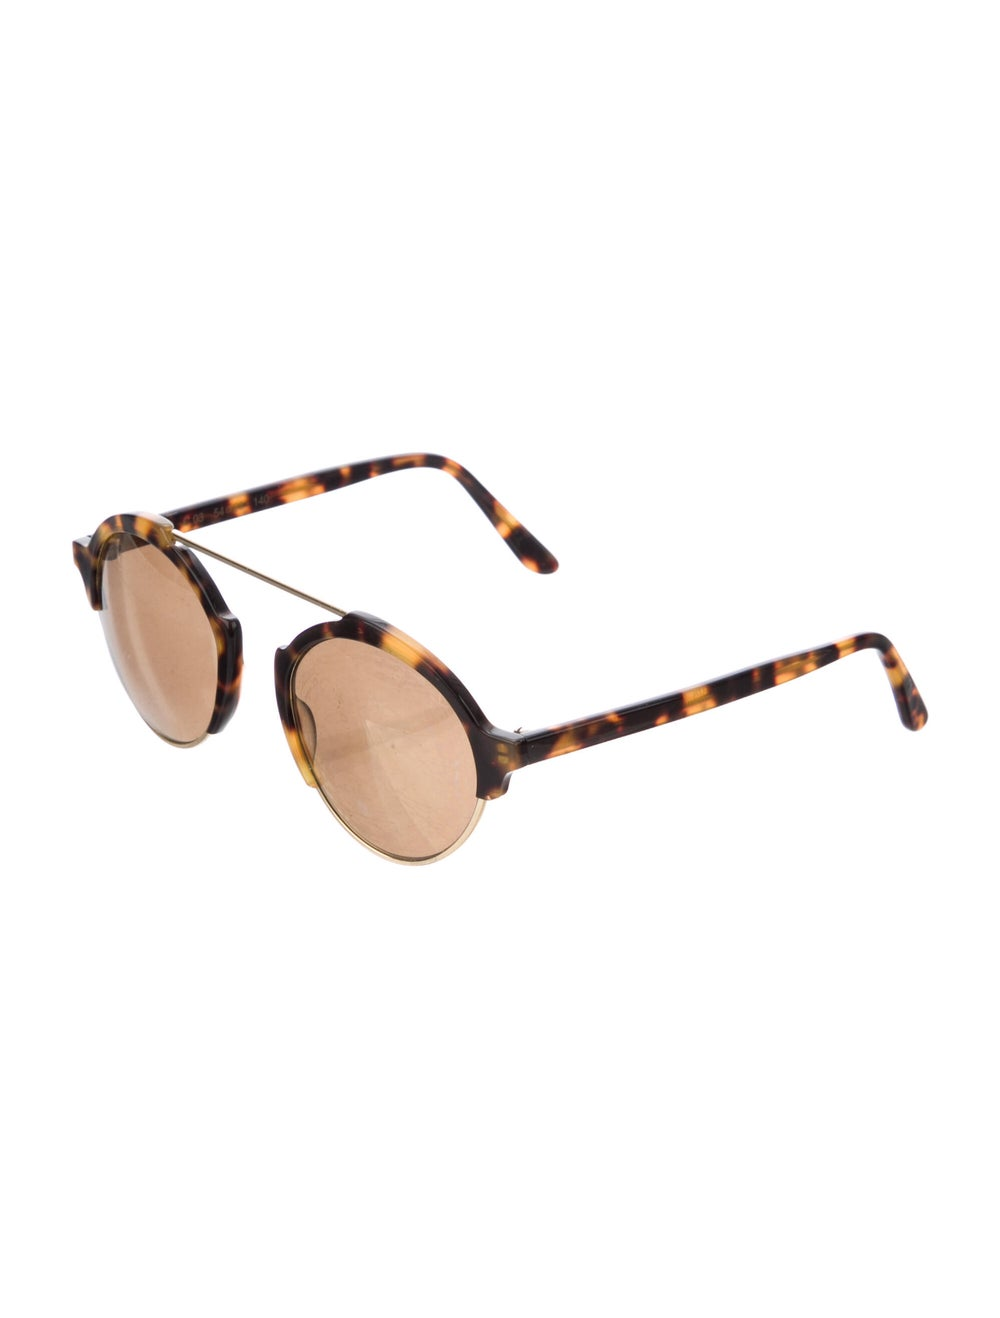 Warby Parker Round Mirrored Sunglasses Gold - image 2